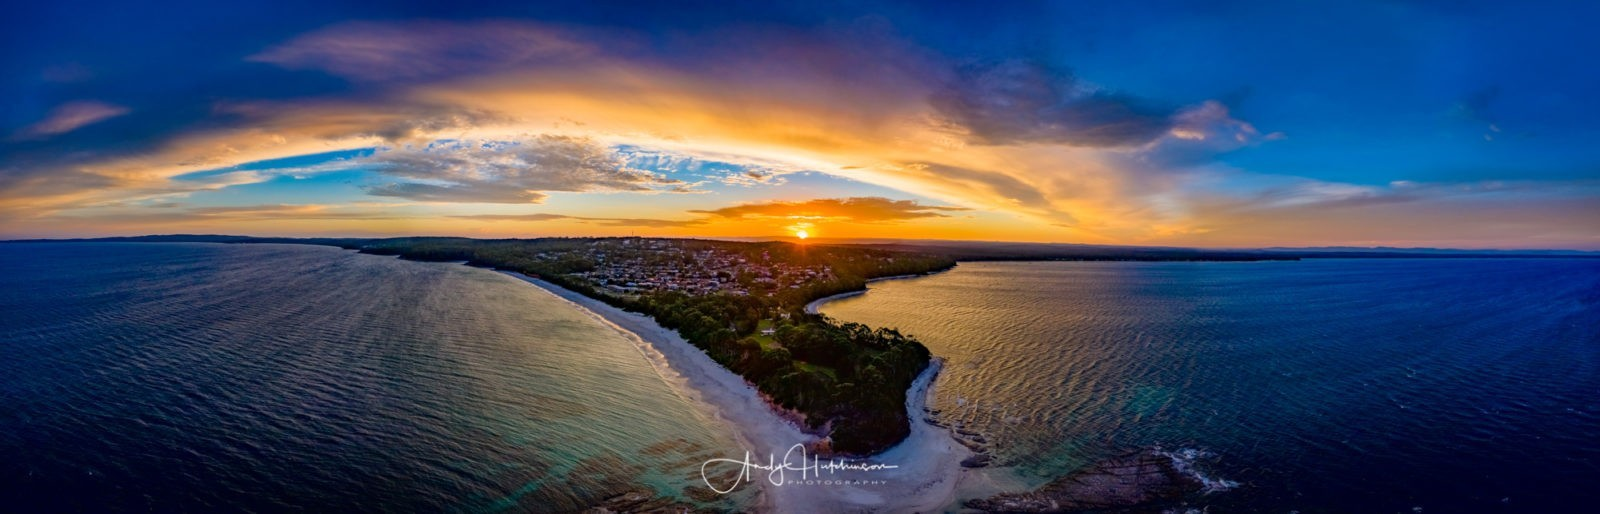 But when I got to Plantation, the winds had eased off a bit and so I took the decision to fly the Mavic again. I figured in-for-a-penny-in-for-a-pound and set it to do some 180º panos. This was from about 50m up just over the water's edge beyond the little rock shelf here. Lightroom had trouble stitching this shot due to the low-light and so I  had to run it through AutoPano.